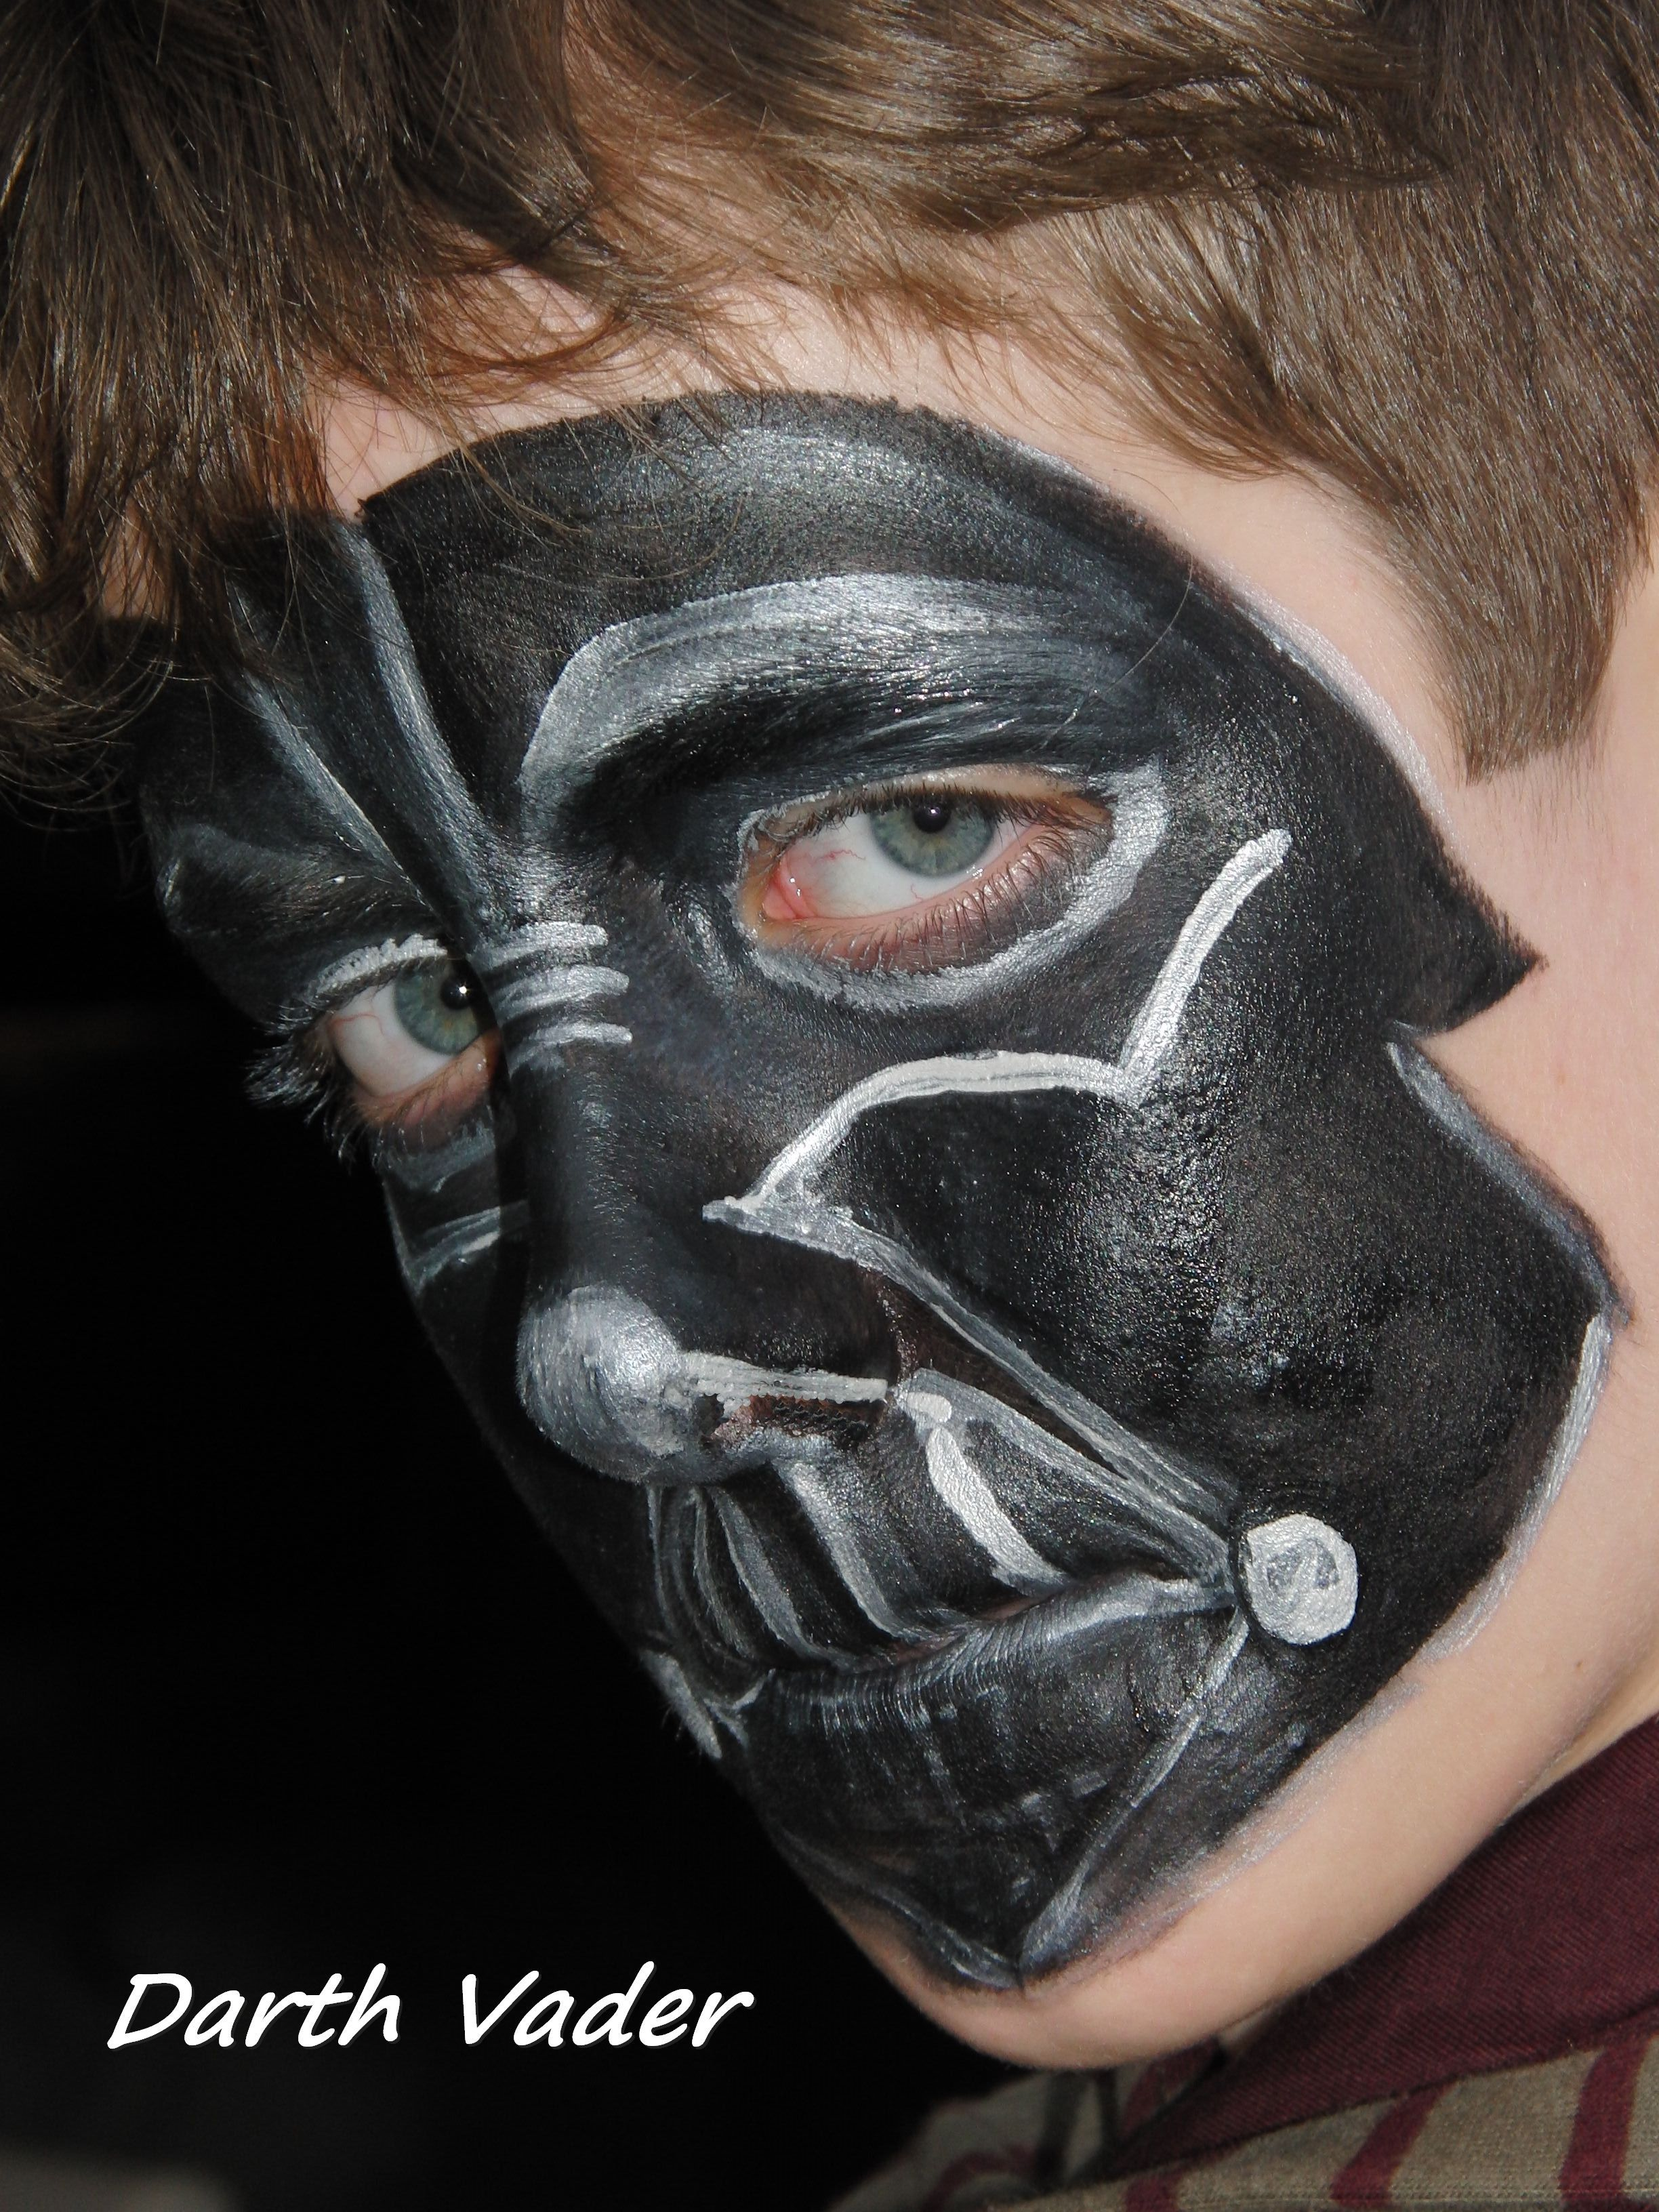 Face painting Star Wars - Darth Vader | Face Paint Star Wars Designs ...